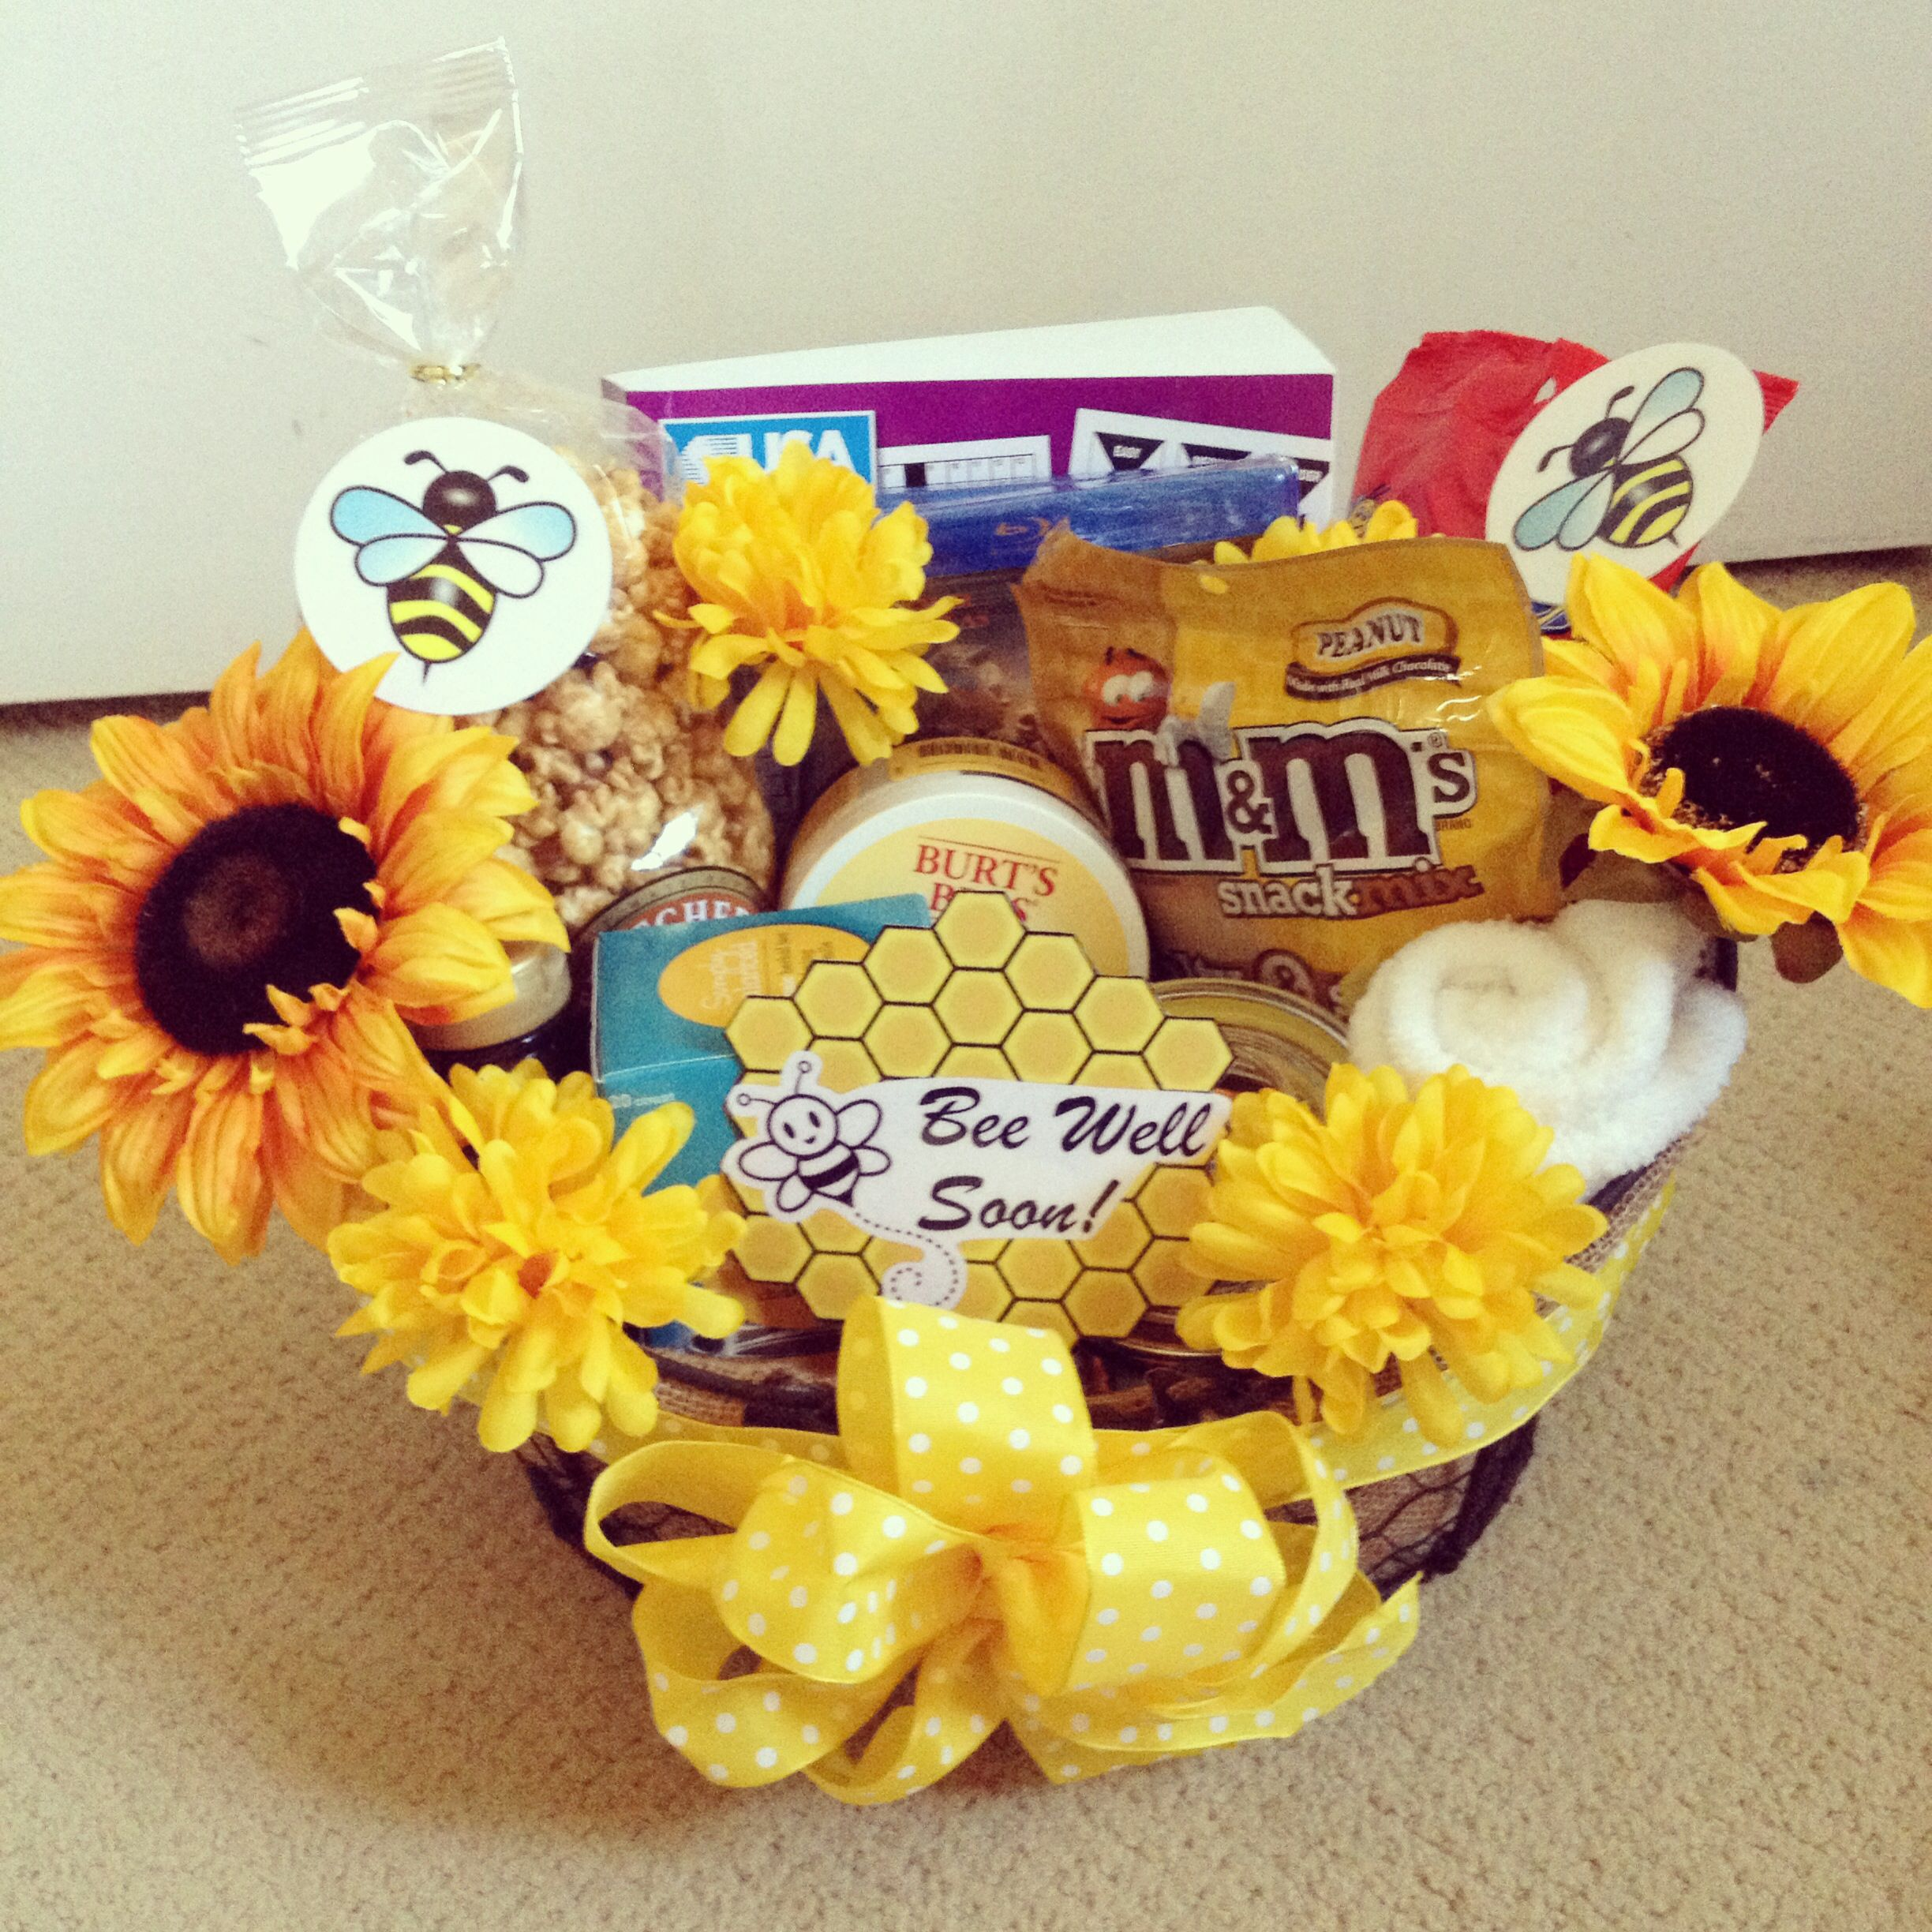 The 25 best get well soon basket ideas on pinterest get well the 25 best get well soon basket ideas on pinterest get well gifts get well baskets and get well soon gifts dhlflorist Images